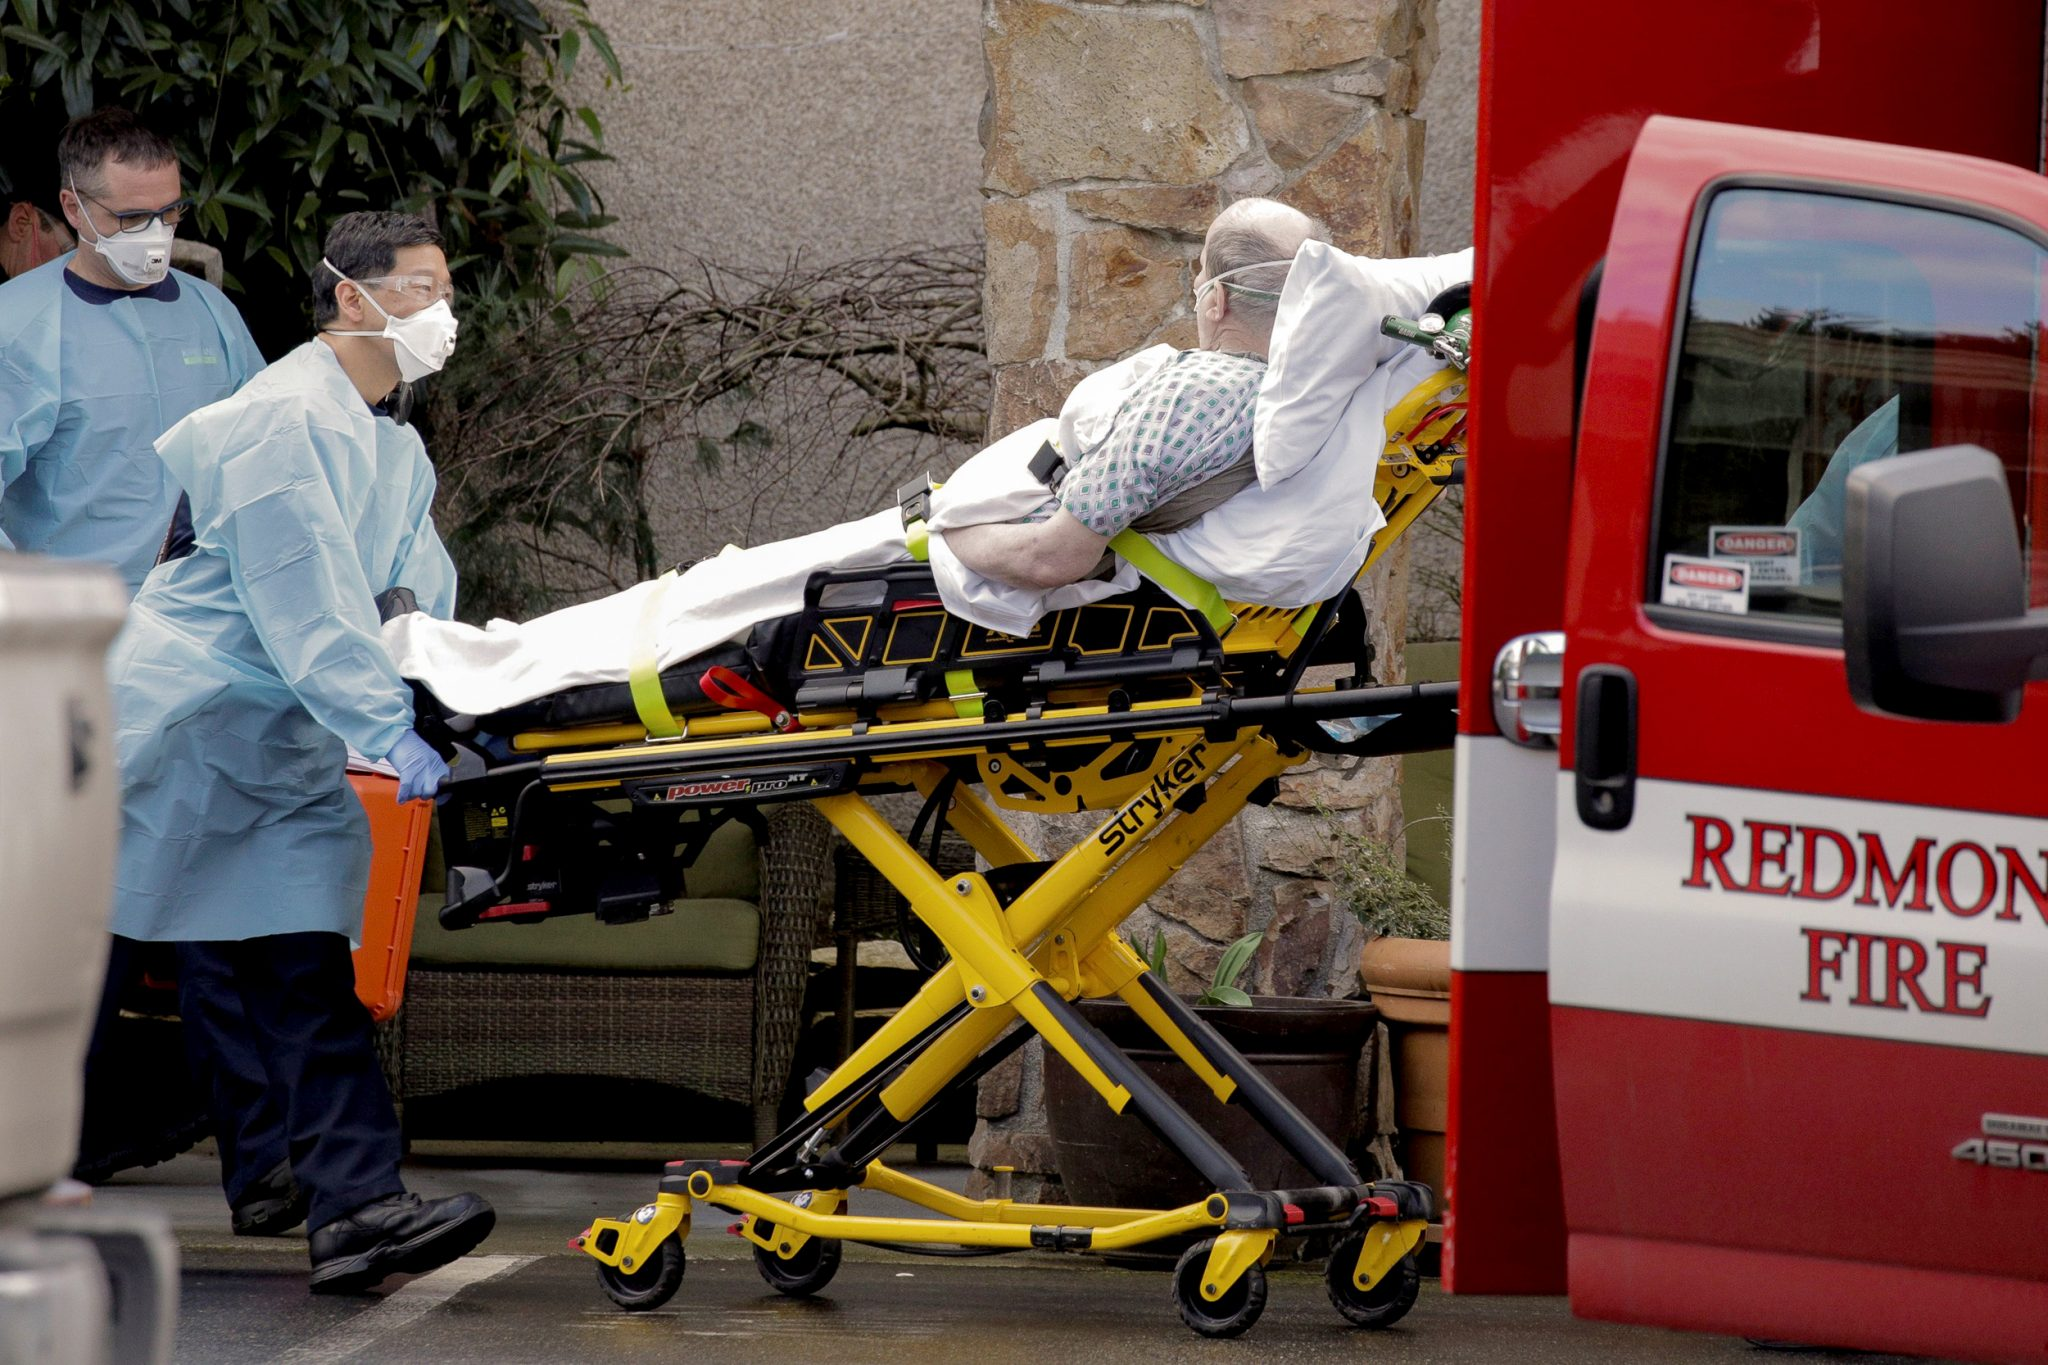 Image: Medics transport a man on a stretcher into an ambulance at the Life Care Center, a long-term care facility linked to several confirmed coronavirus cases, in Kirkland